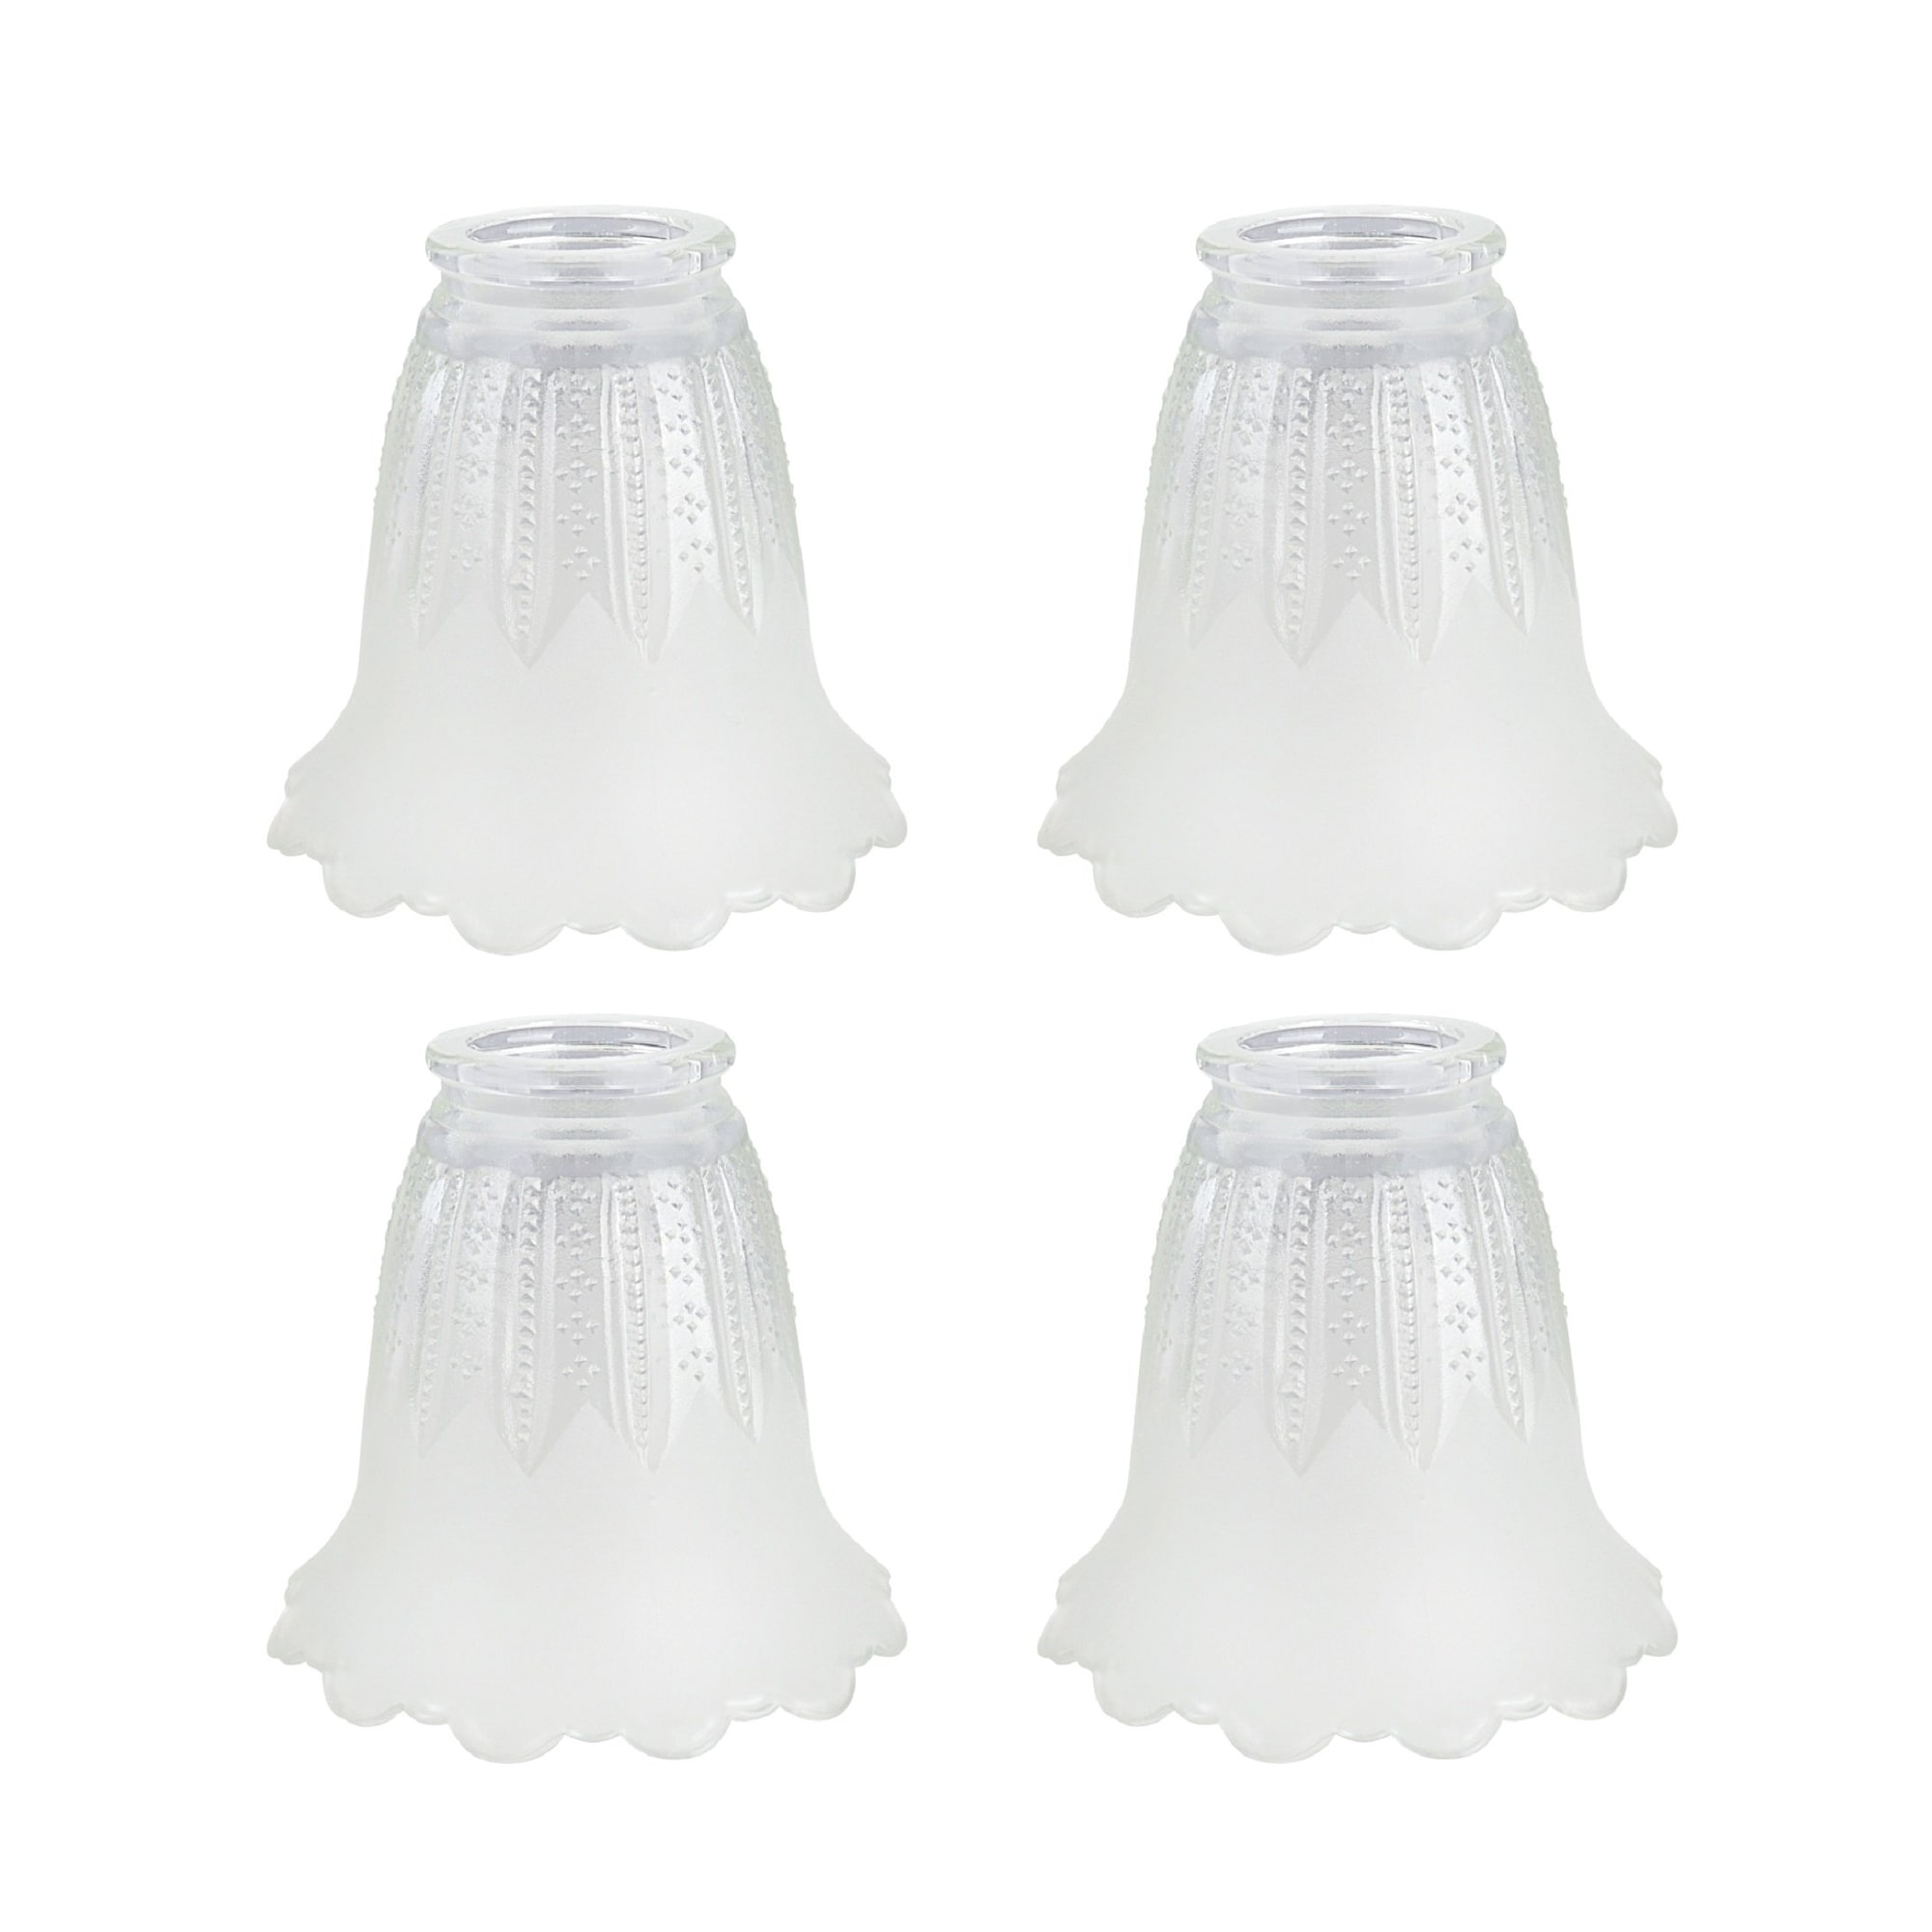 Aspen Creative Clear Frosted Replacement Glass Shade 2 1 8 Fitter Size 4 1 2 High X 5 Diameter Set Of 4 On Sale Overstock 31300471